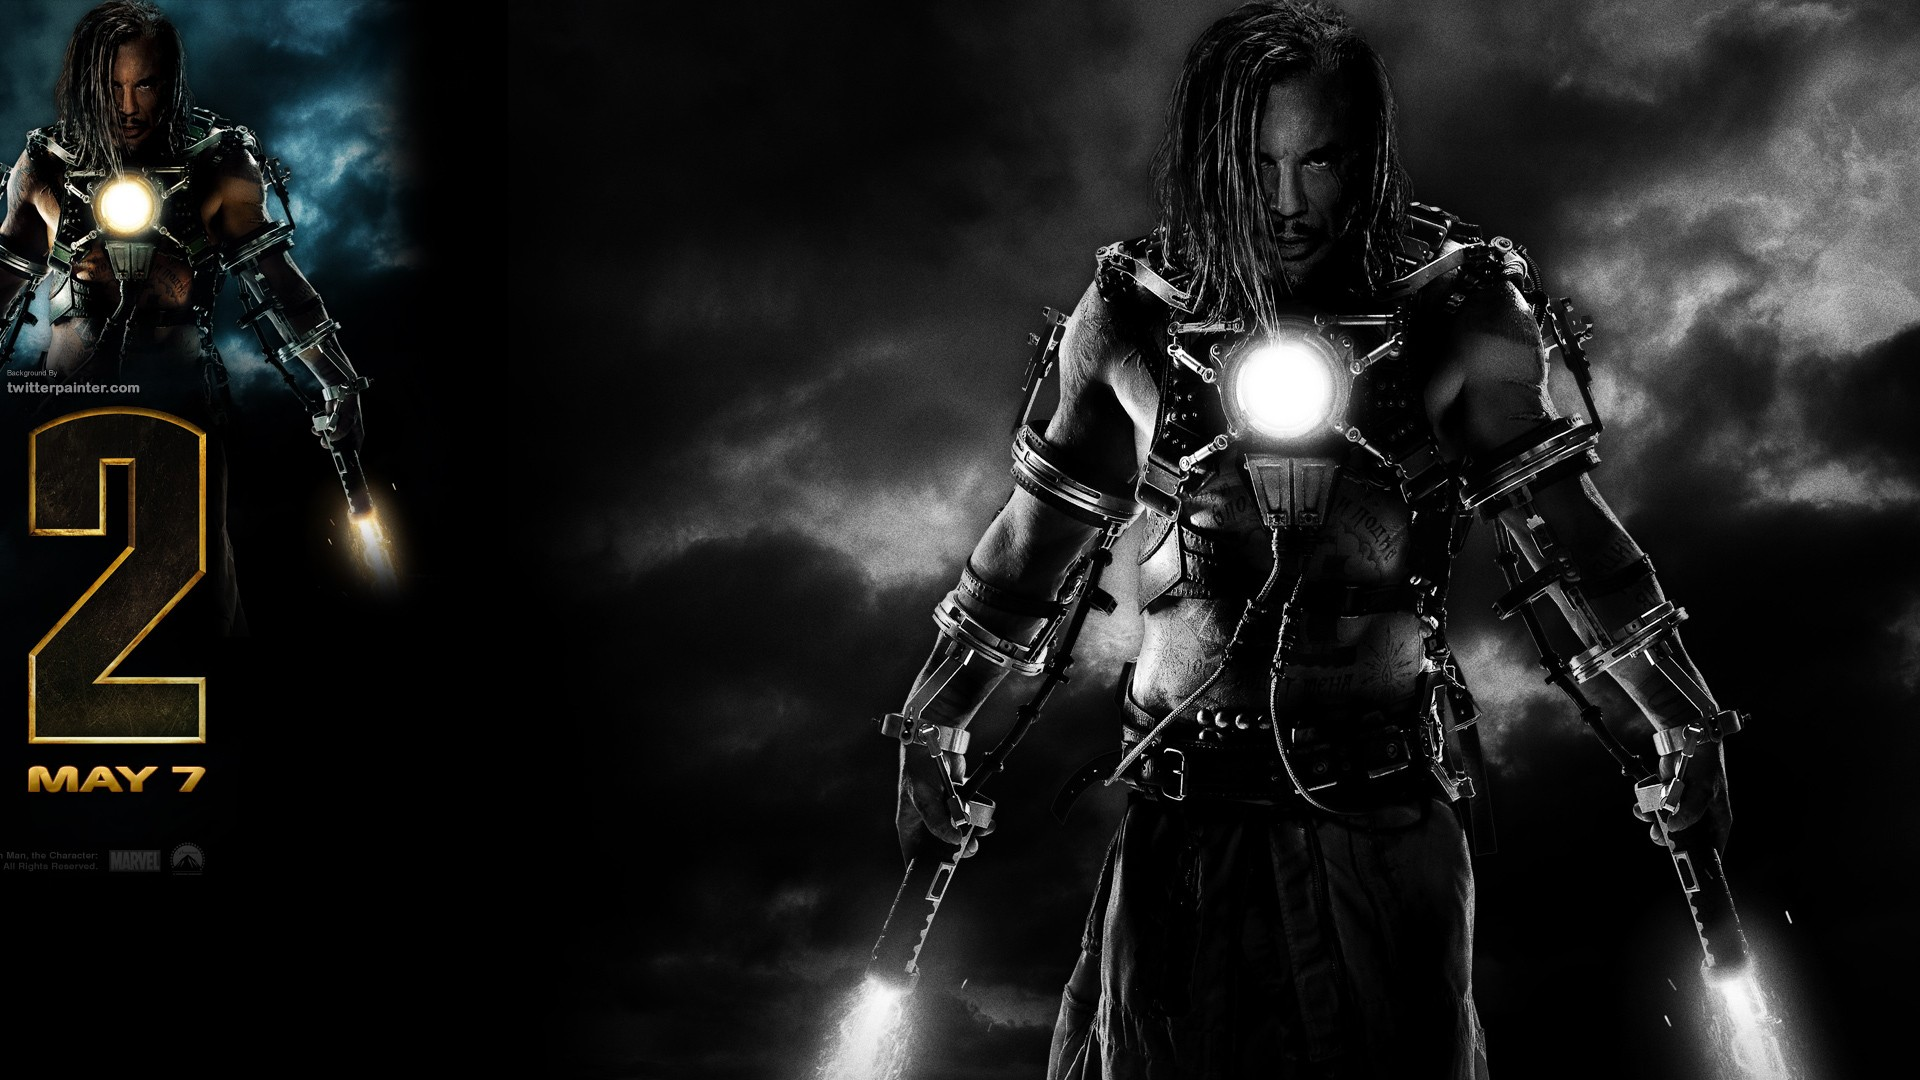 General 1920x1080 movies Iron Man 2 Iron Man Tony Stark Mickey Rourke Marvel Cinematic Universe movie poster